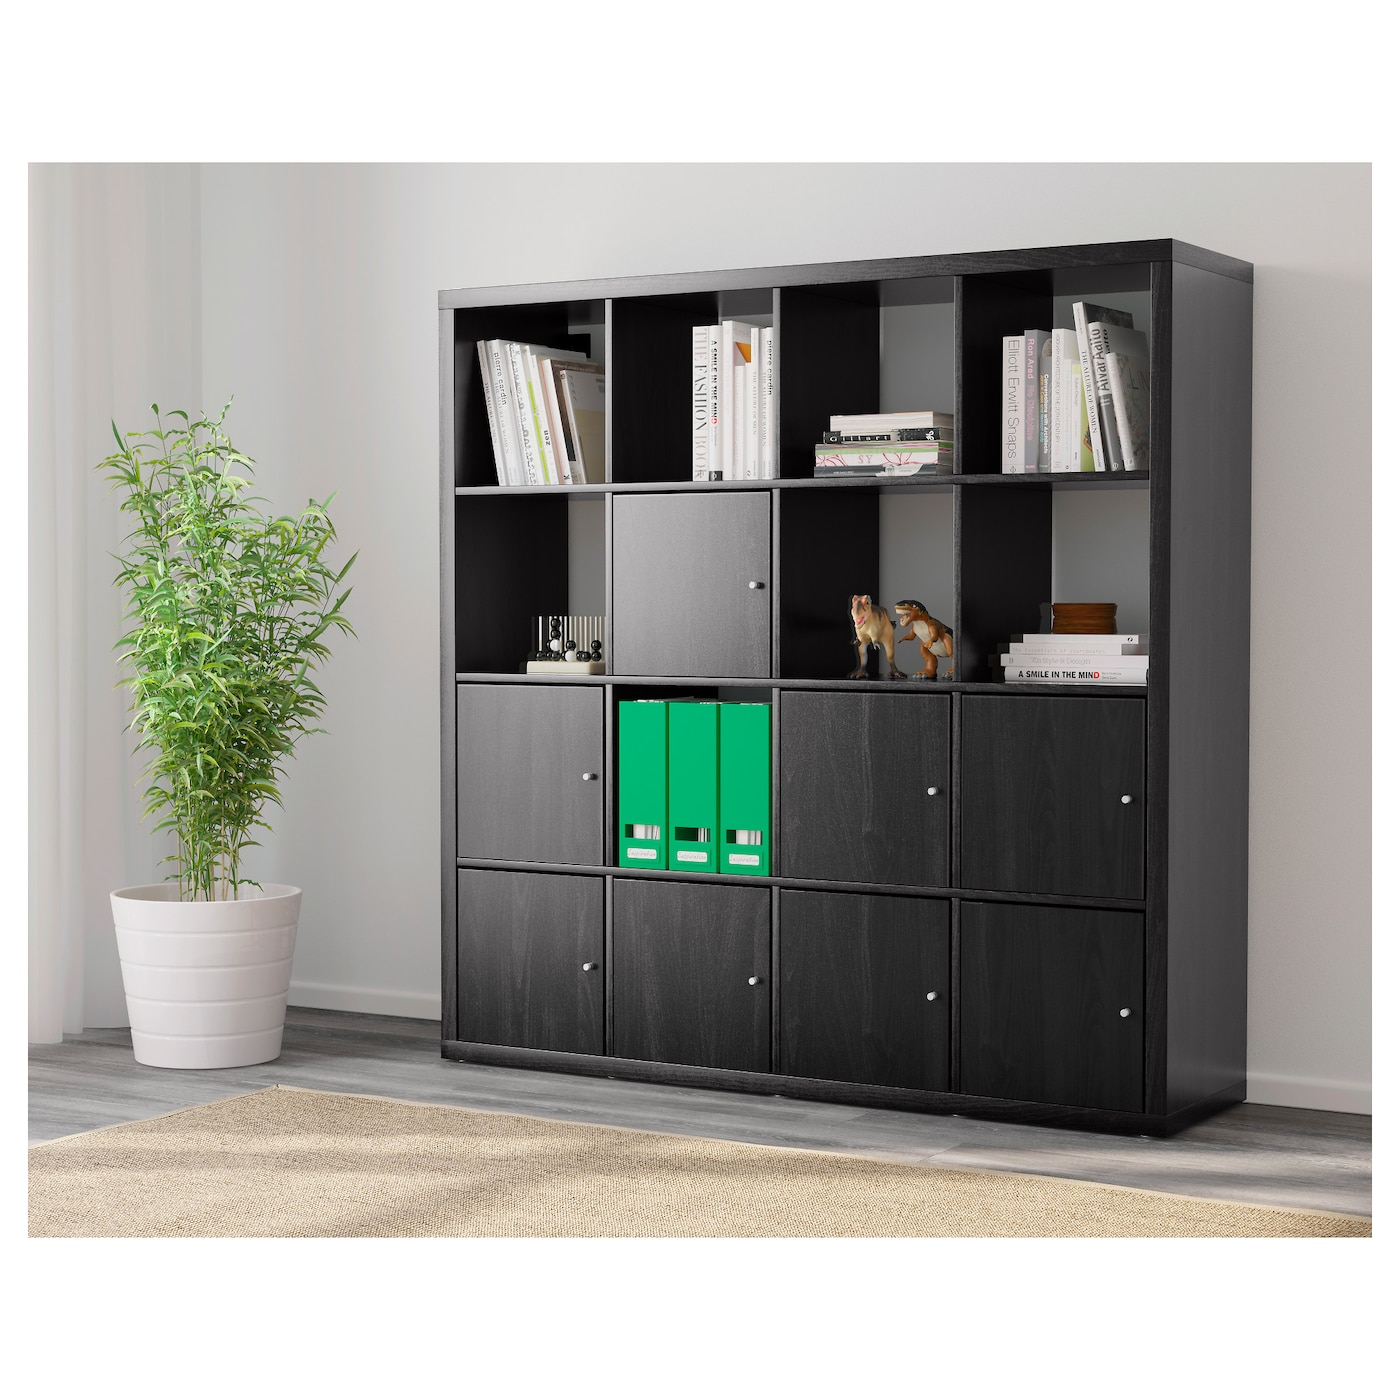 kallax shelving unit with 8 inserts black brown 147x147 cm. Black Bedroom Furniture Sets. Home Design Ideas